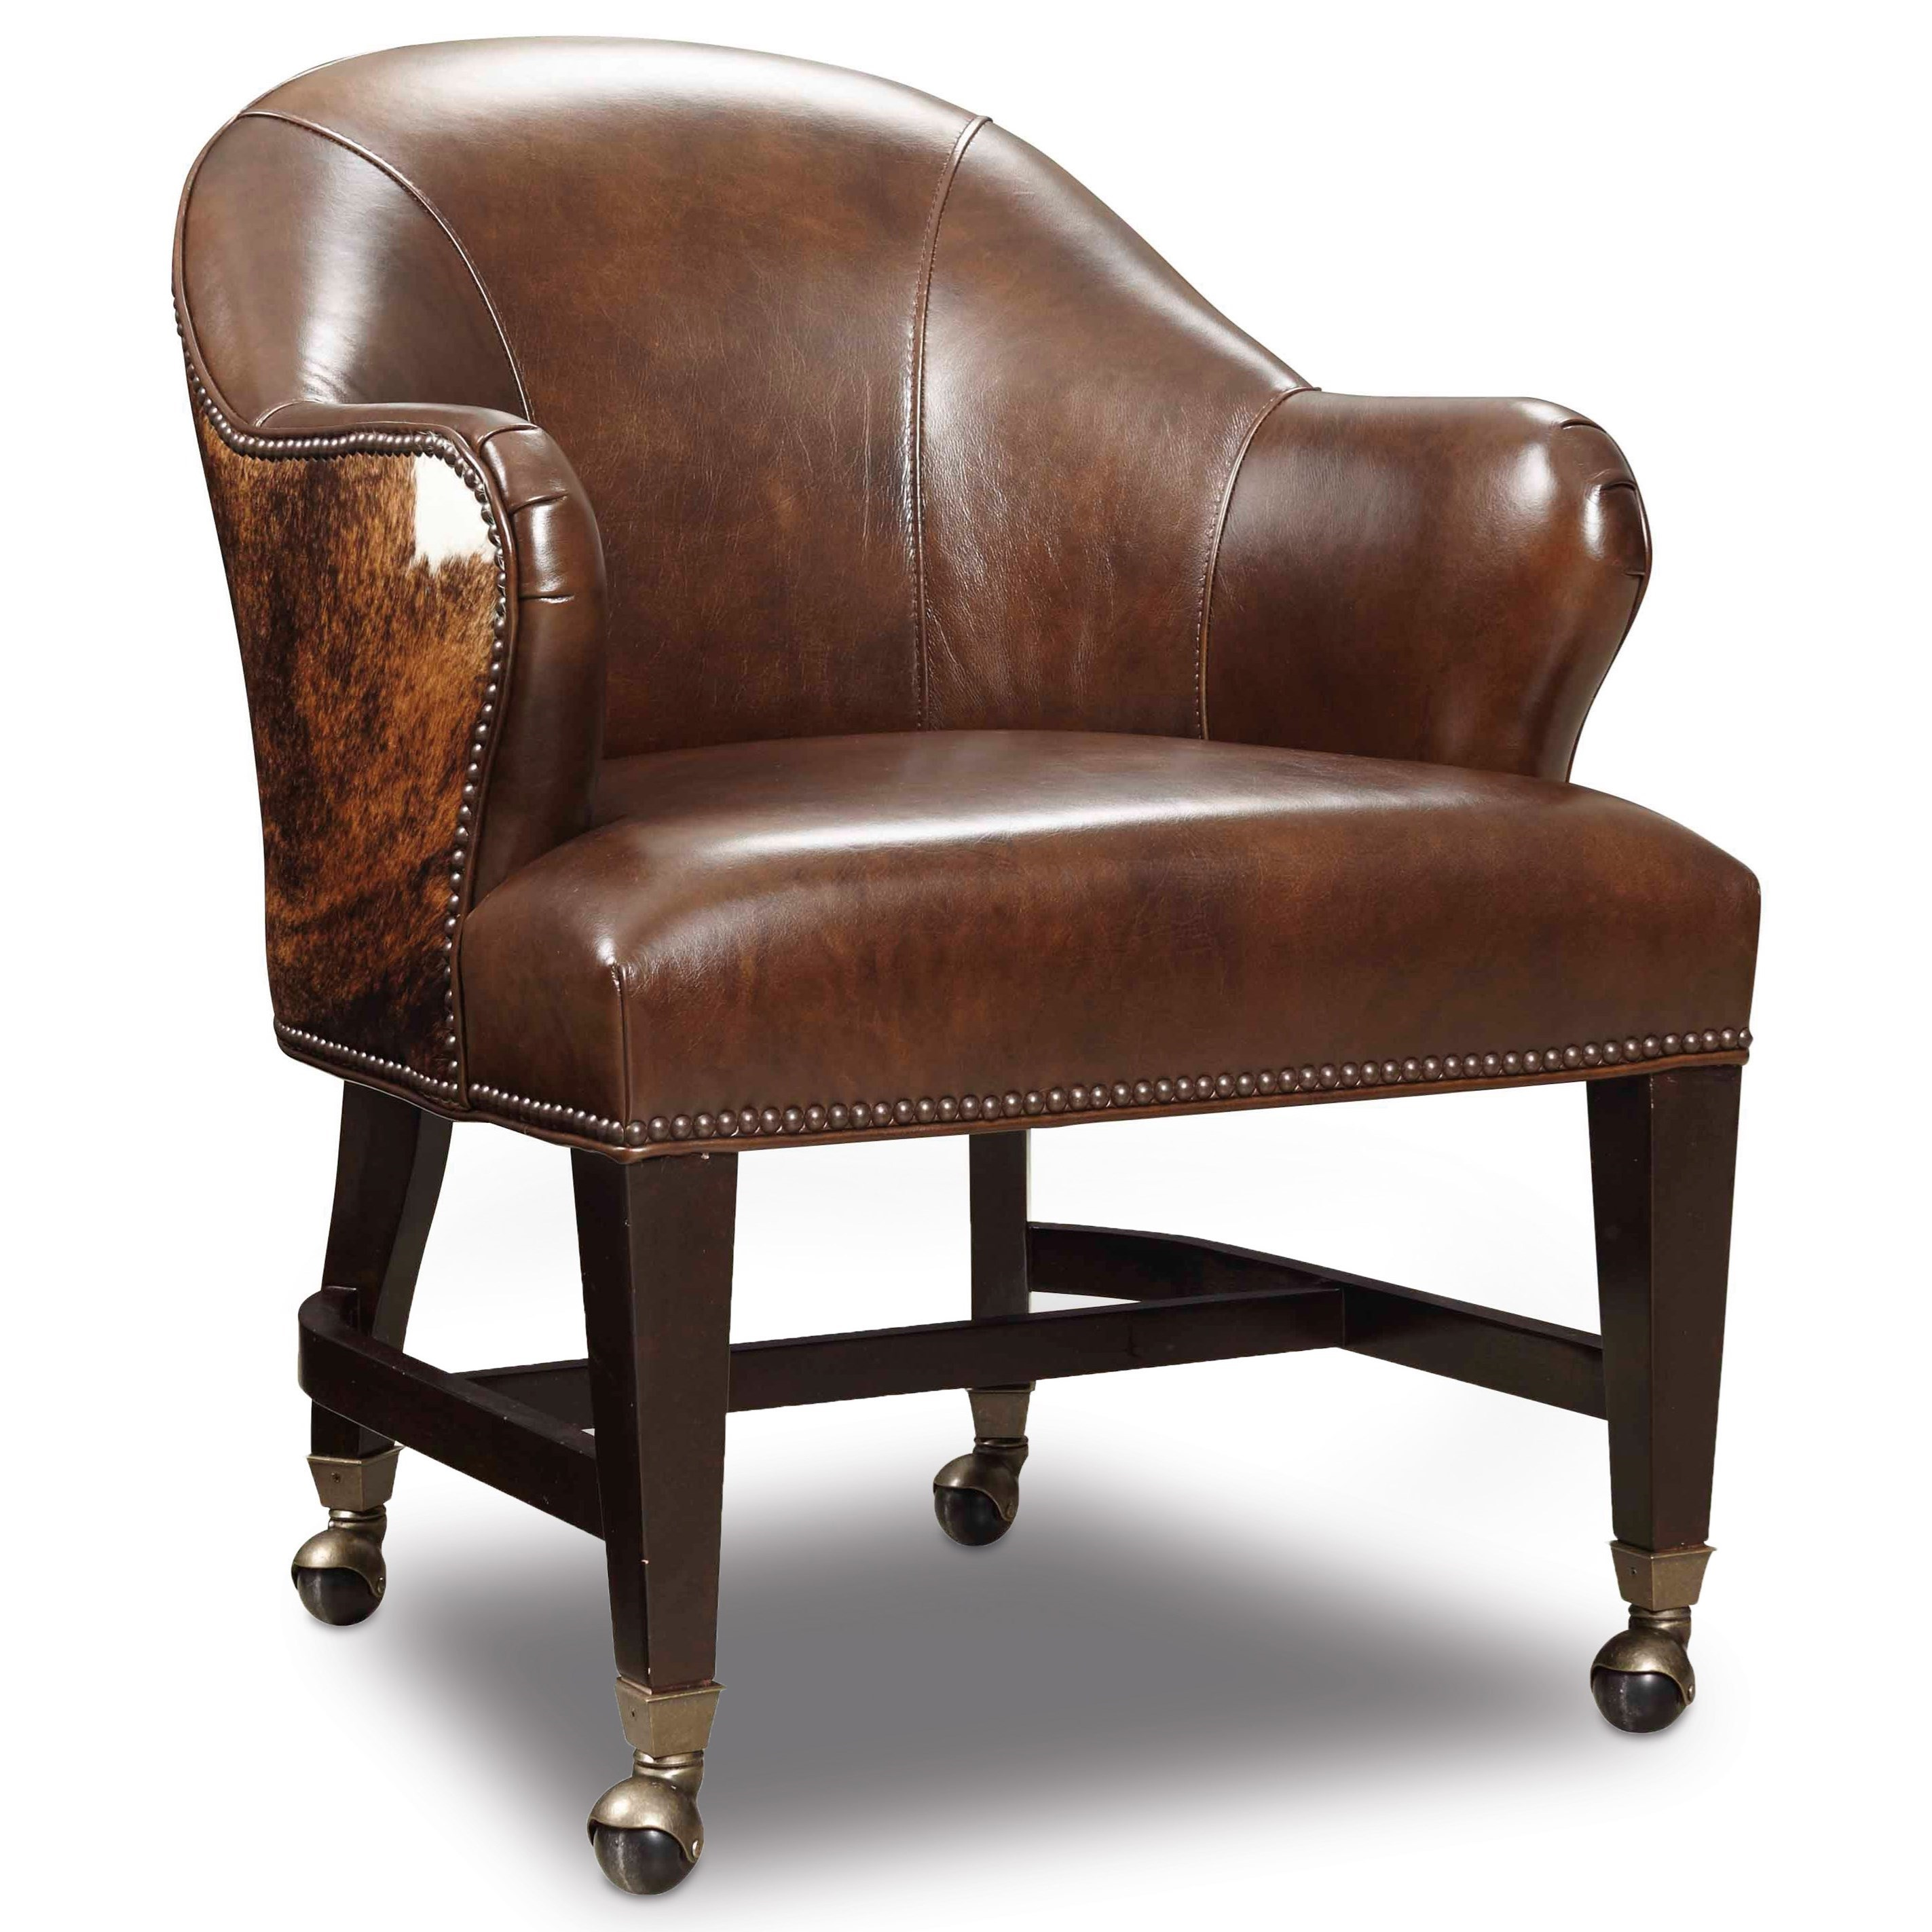 Hooker Furniture Game Chairs Leather Hair On Hide Queen